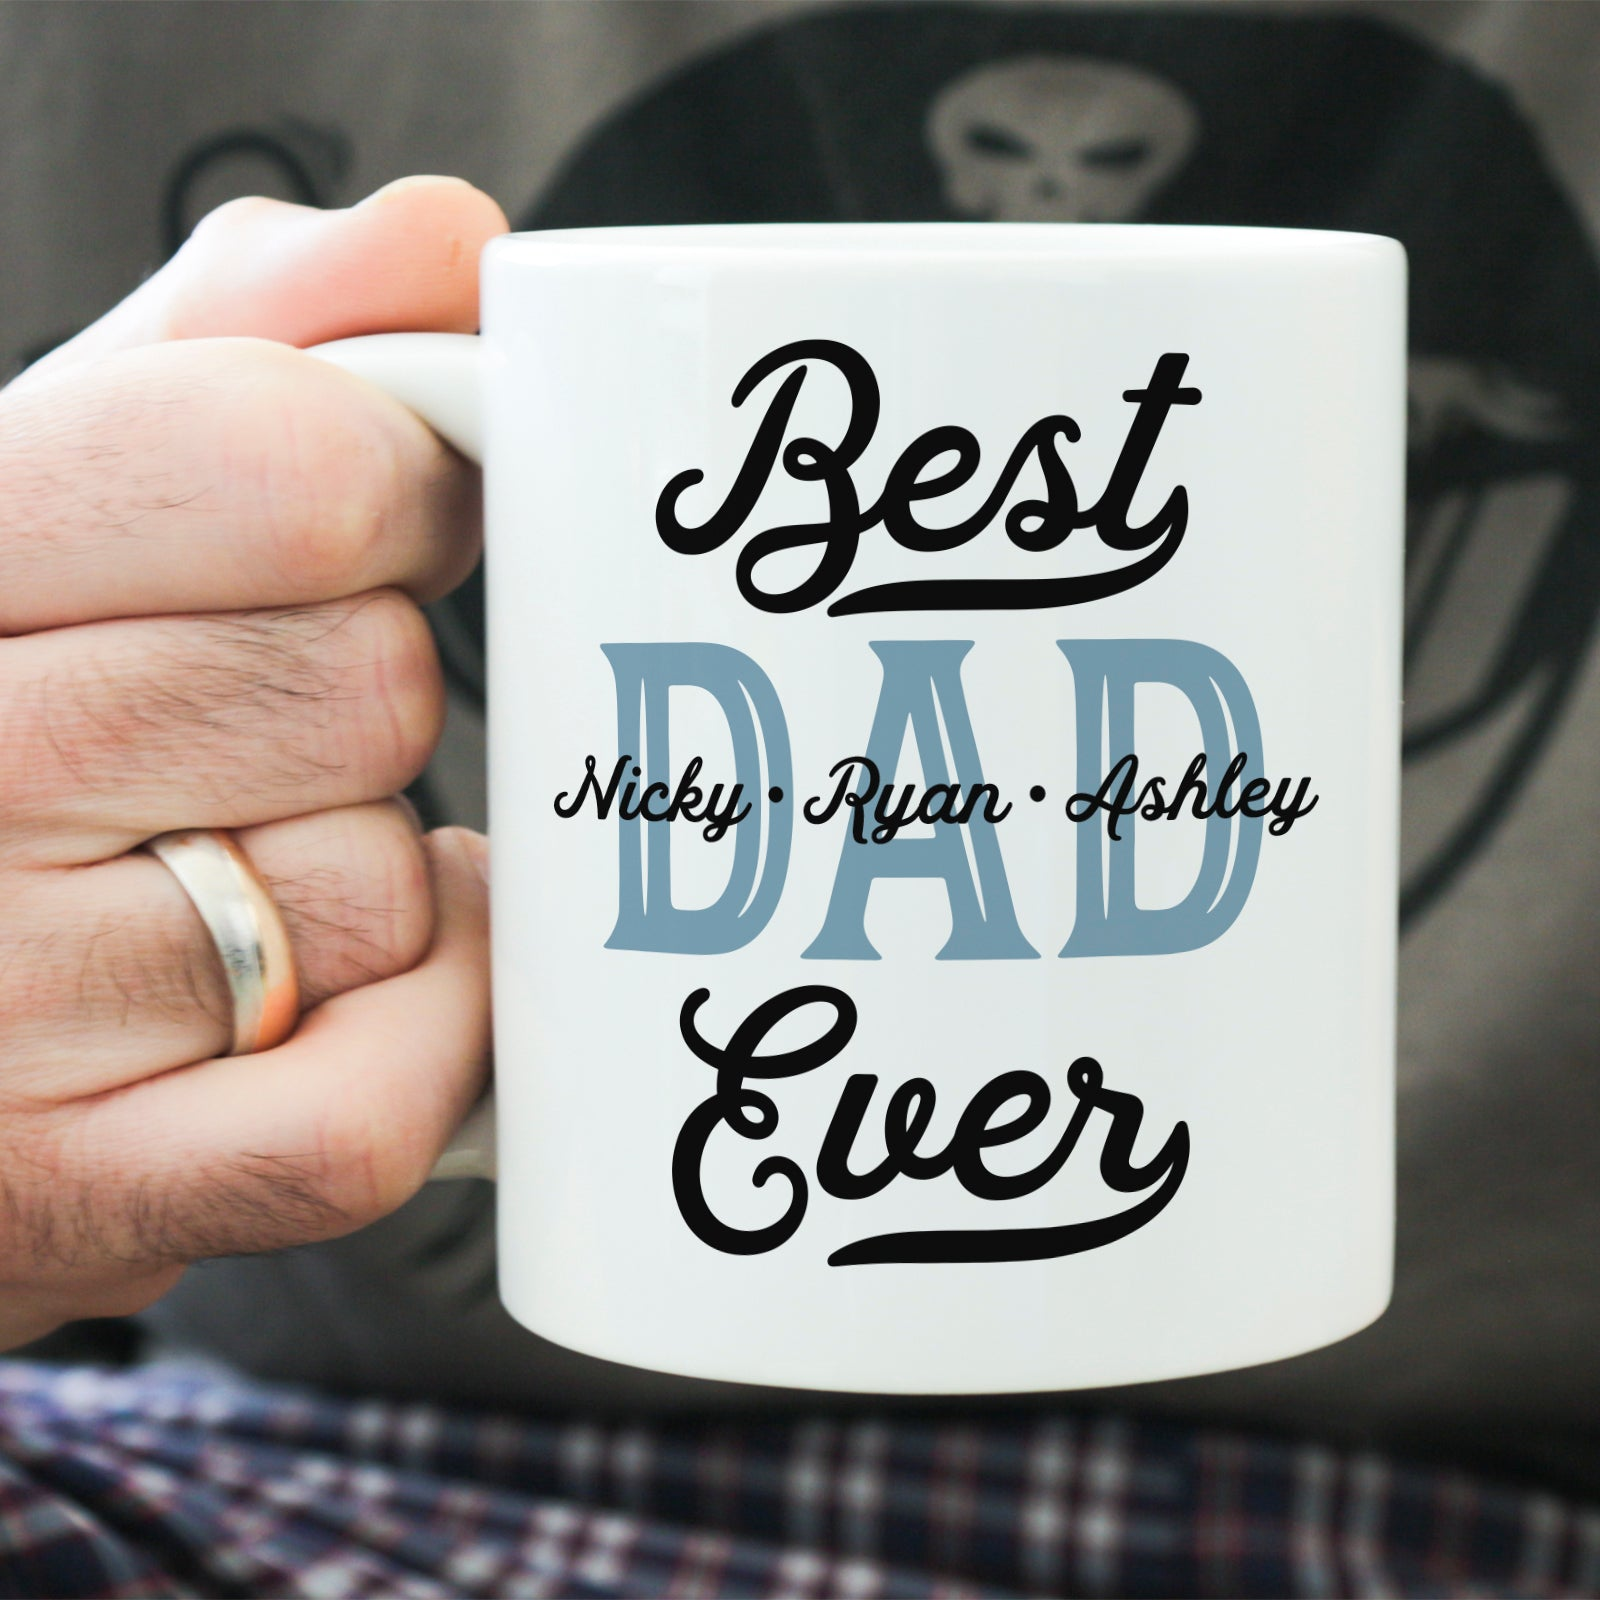 Best Dad Ever Mug Personalized Mug for Dad with Children's Names Cute Father's Day Gift Father's Day Coffee Mug Gift for Dad